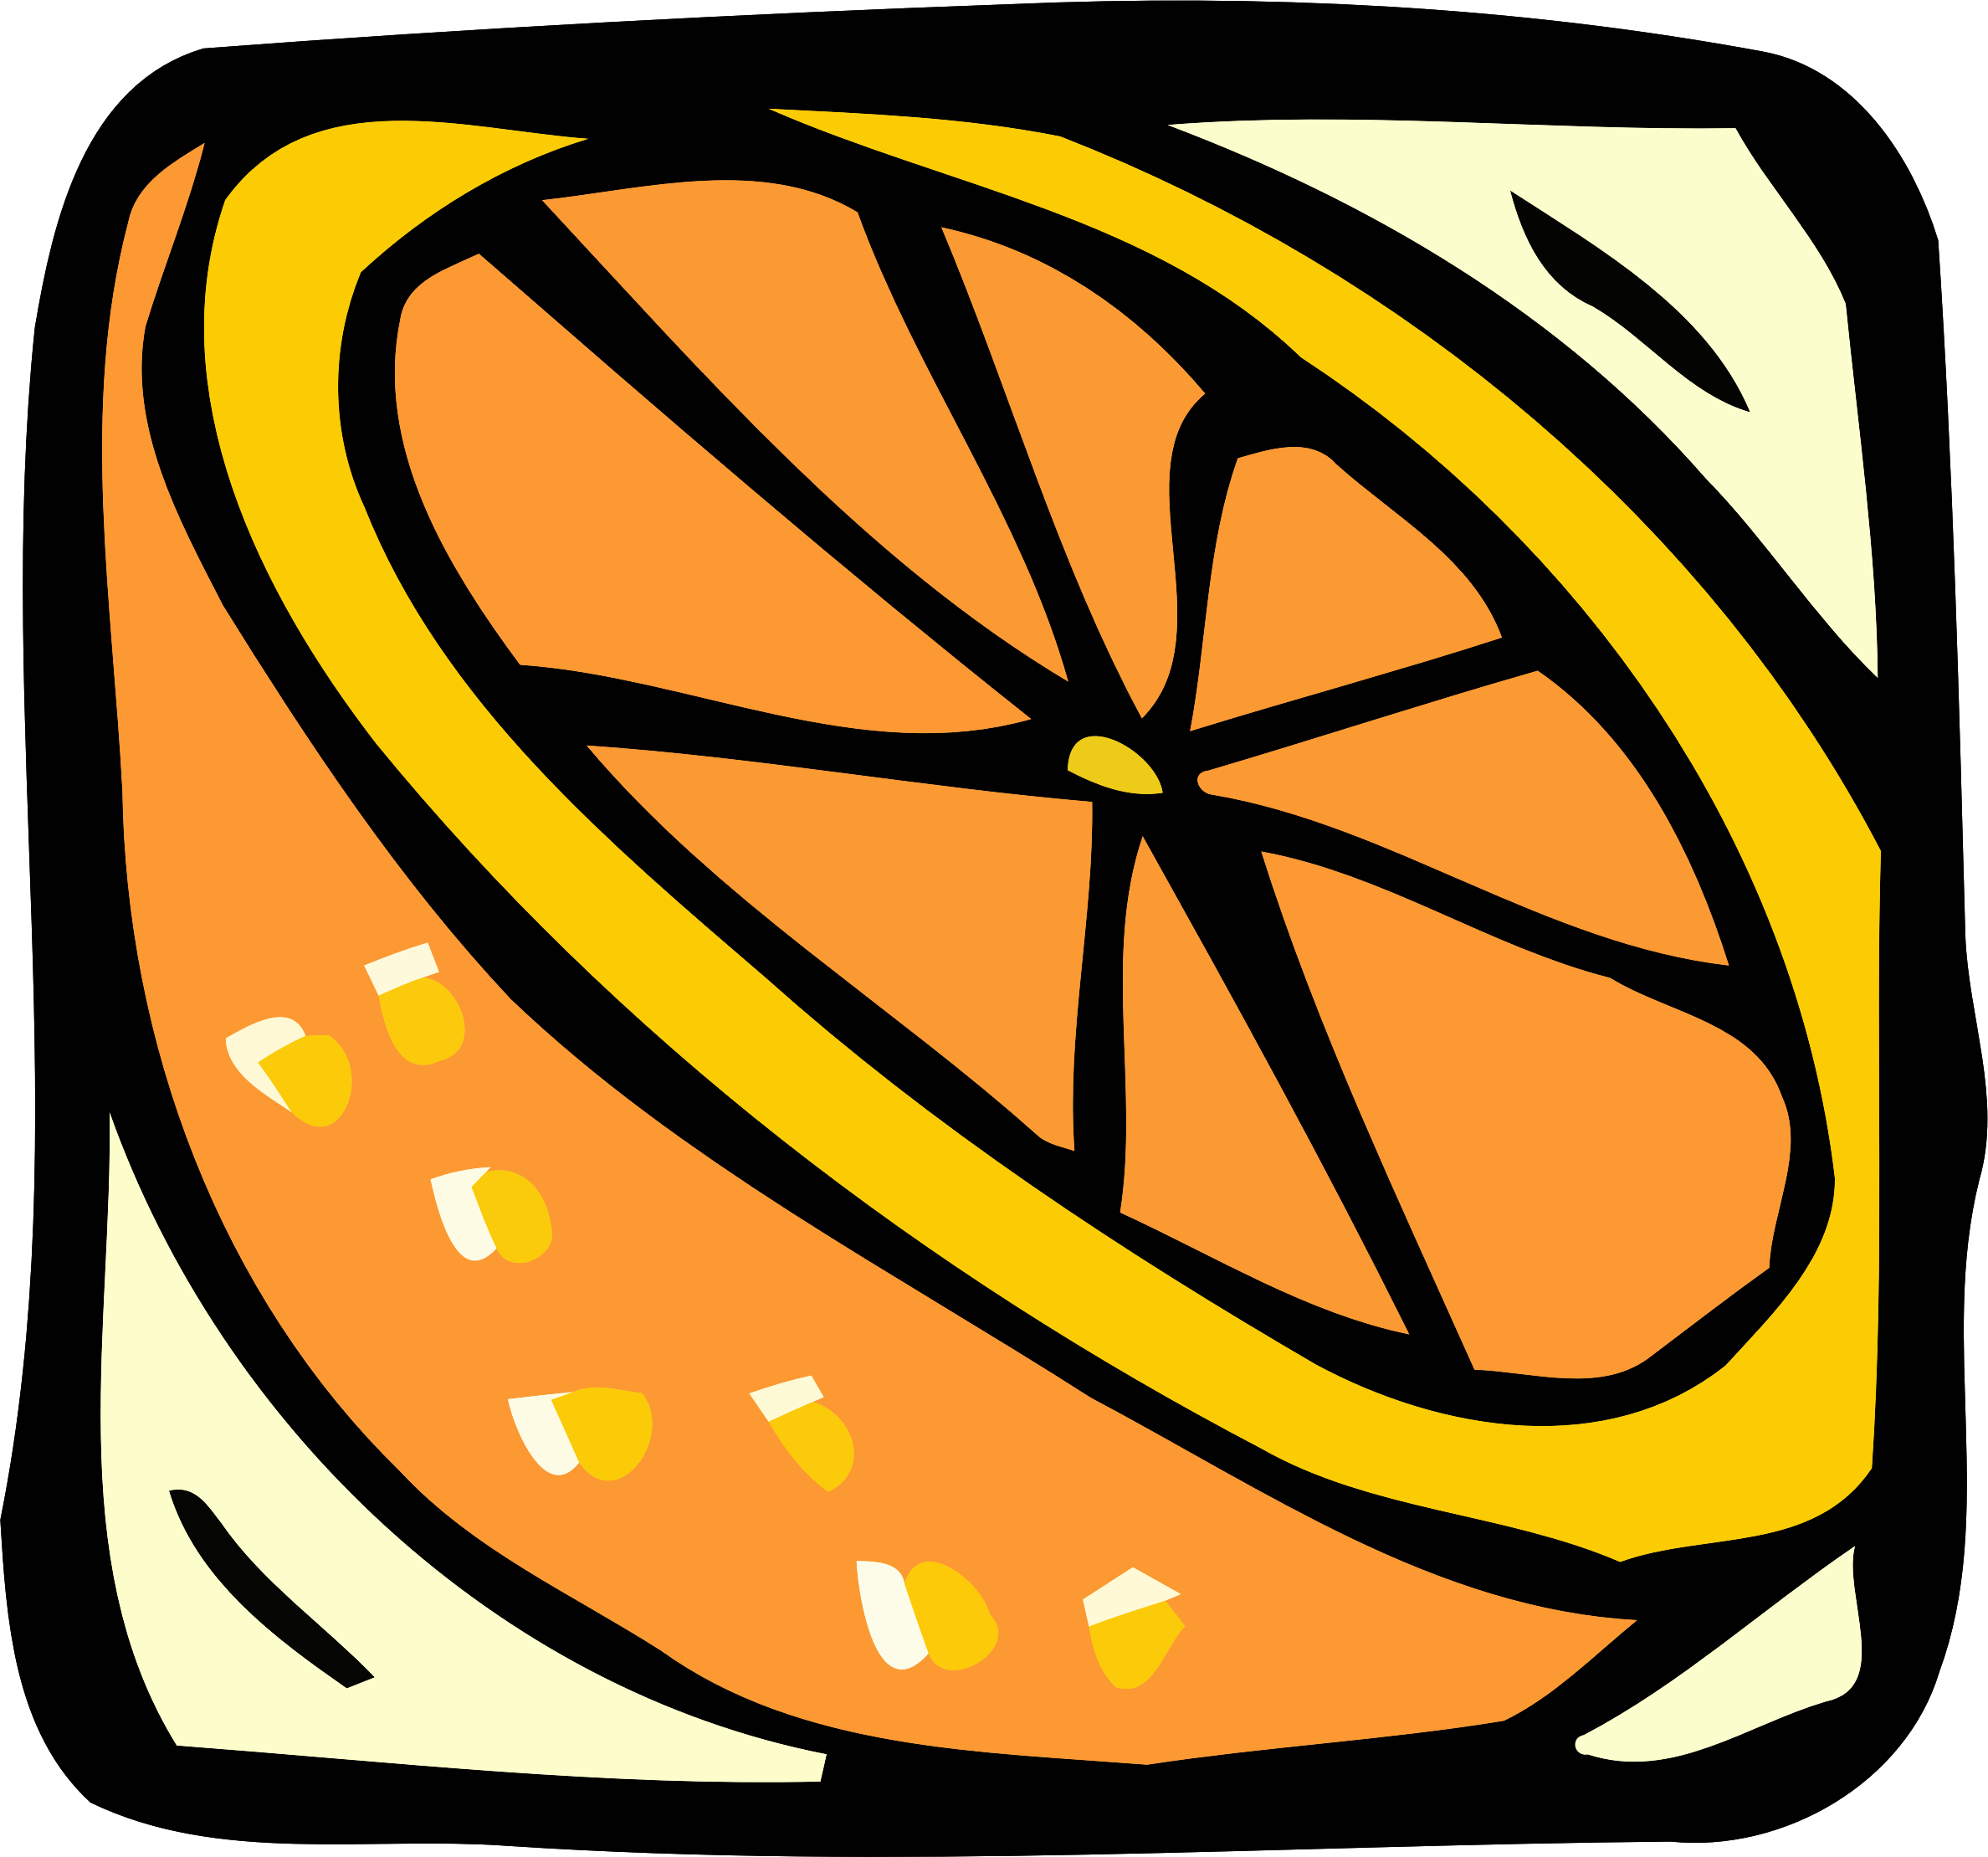 Food and drink icon - orange by Firkin